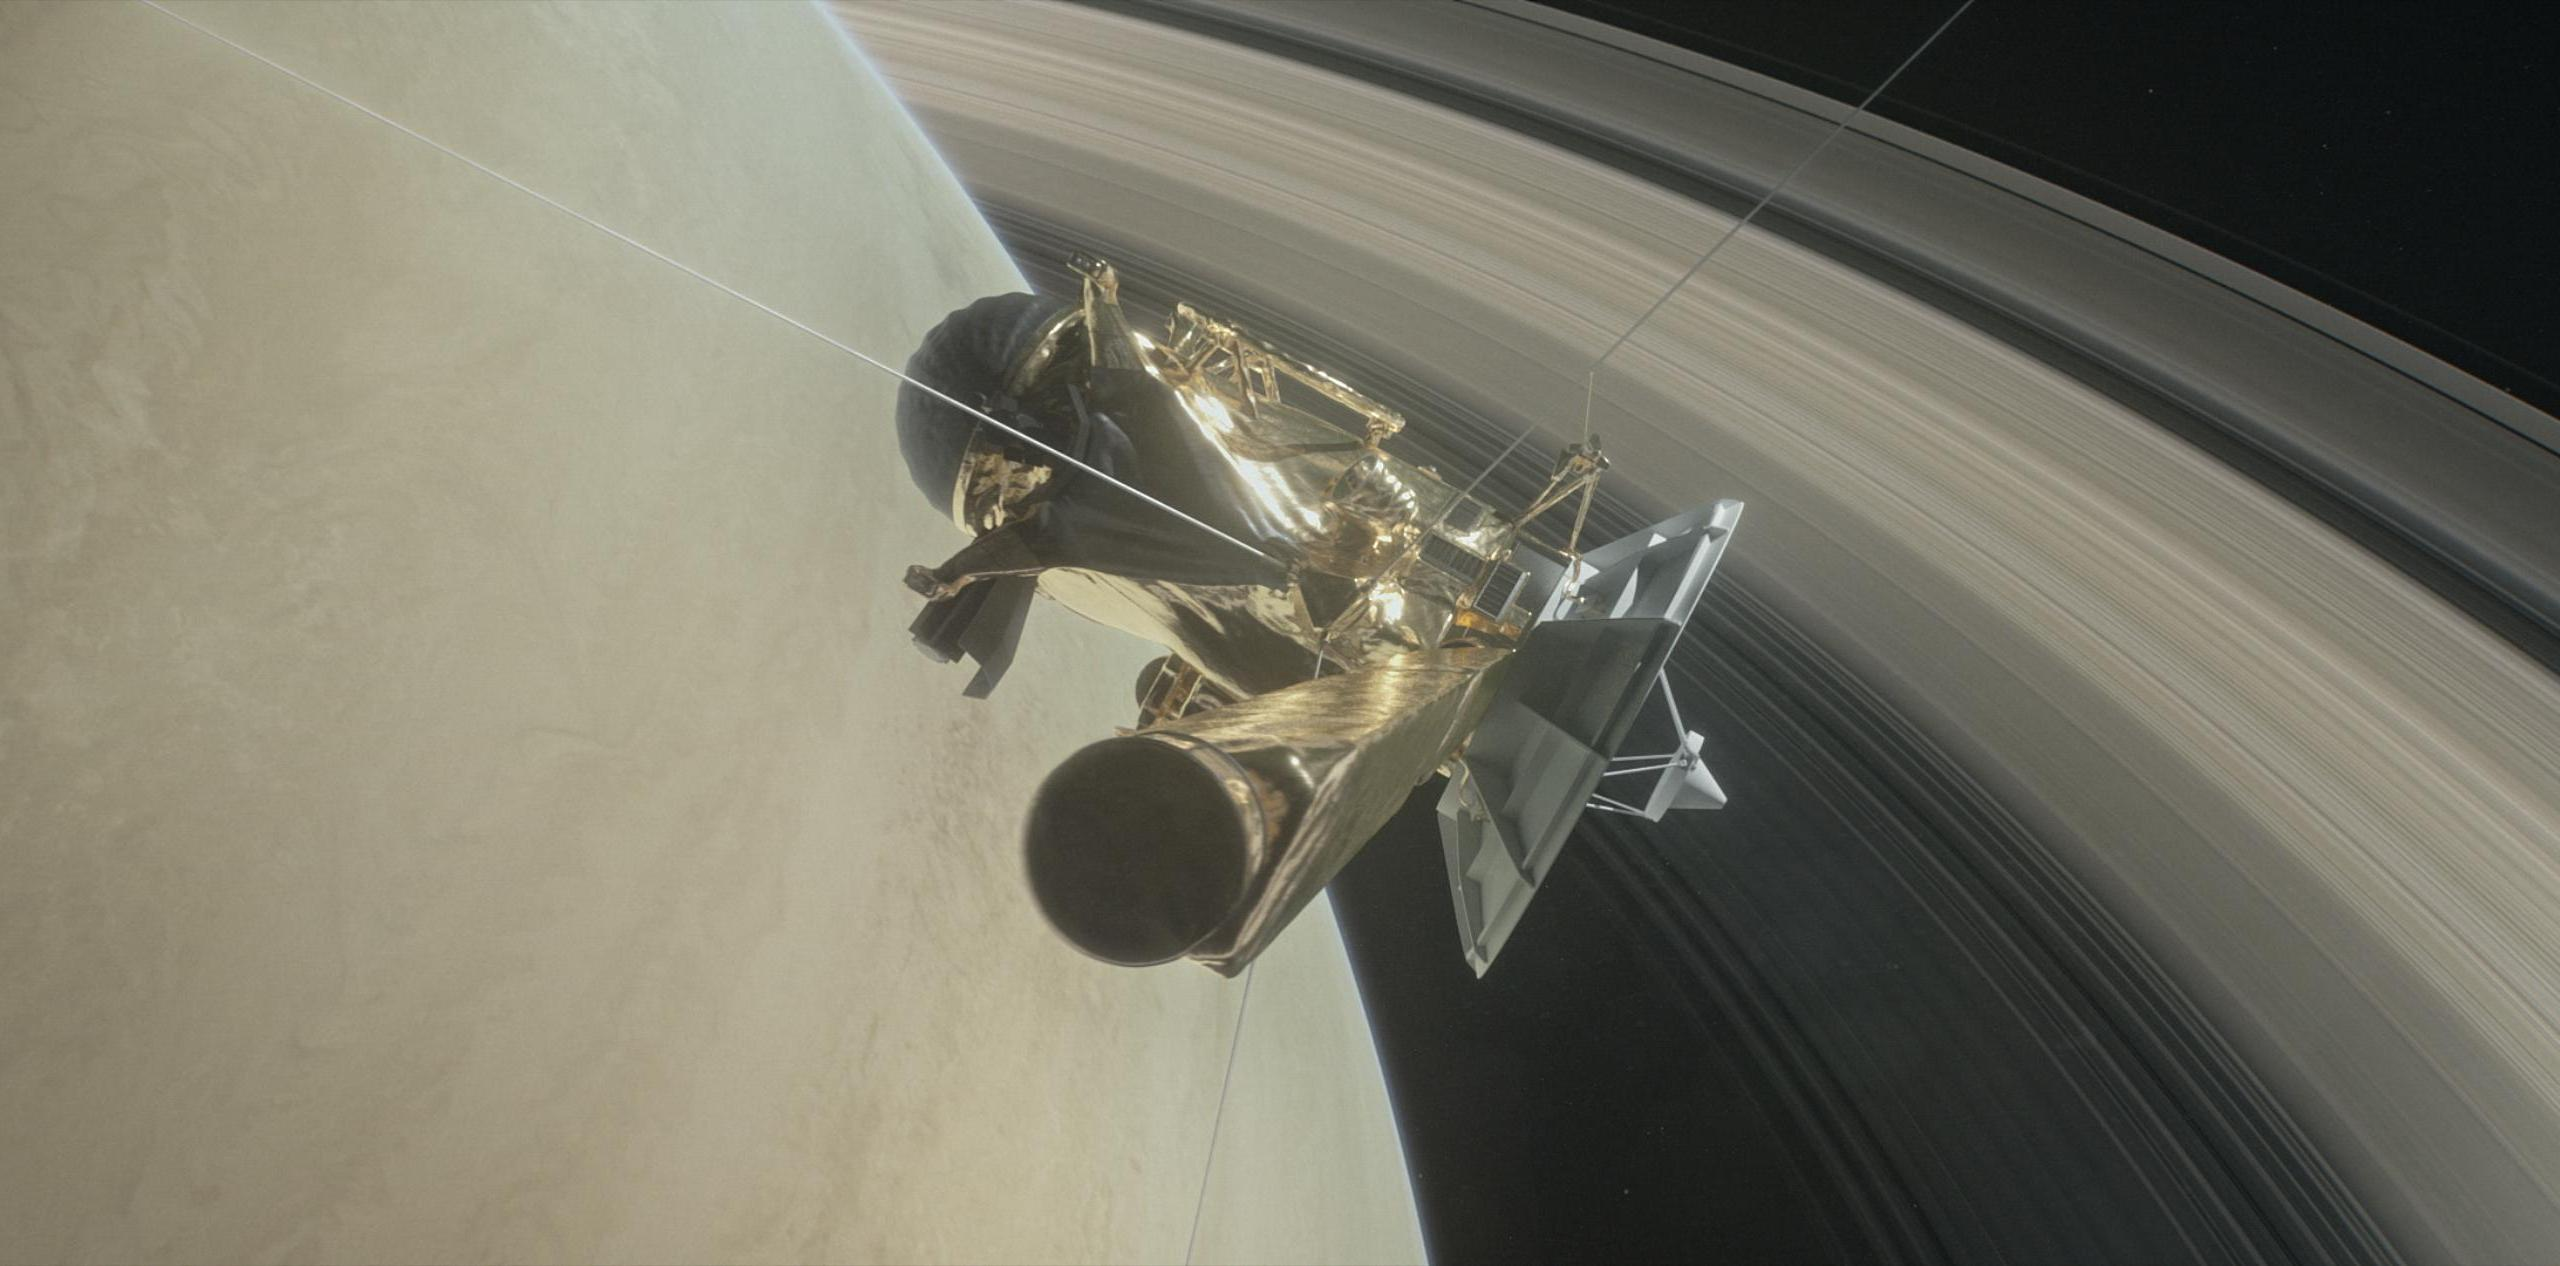 This illustration shows NASA's Cassini spacecraft about to make one of its dives between Saturn and its innermost rings as part of the mission's grand finale. (Credit: NASA)